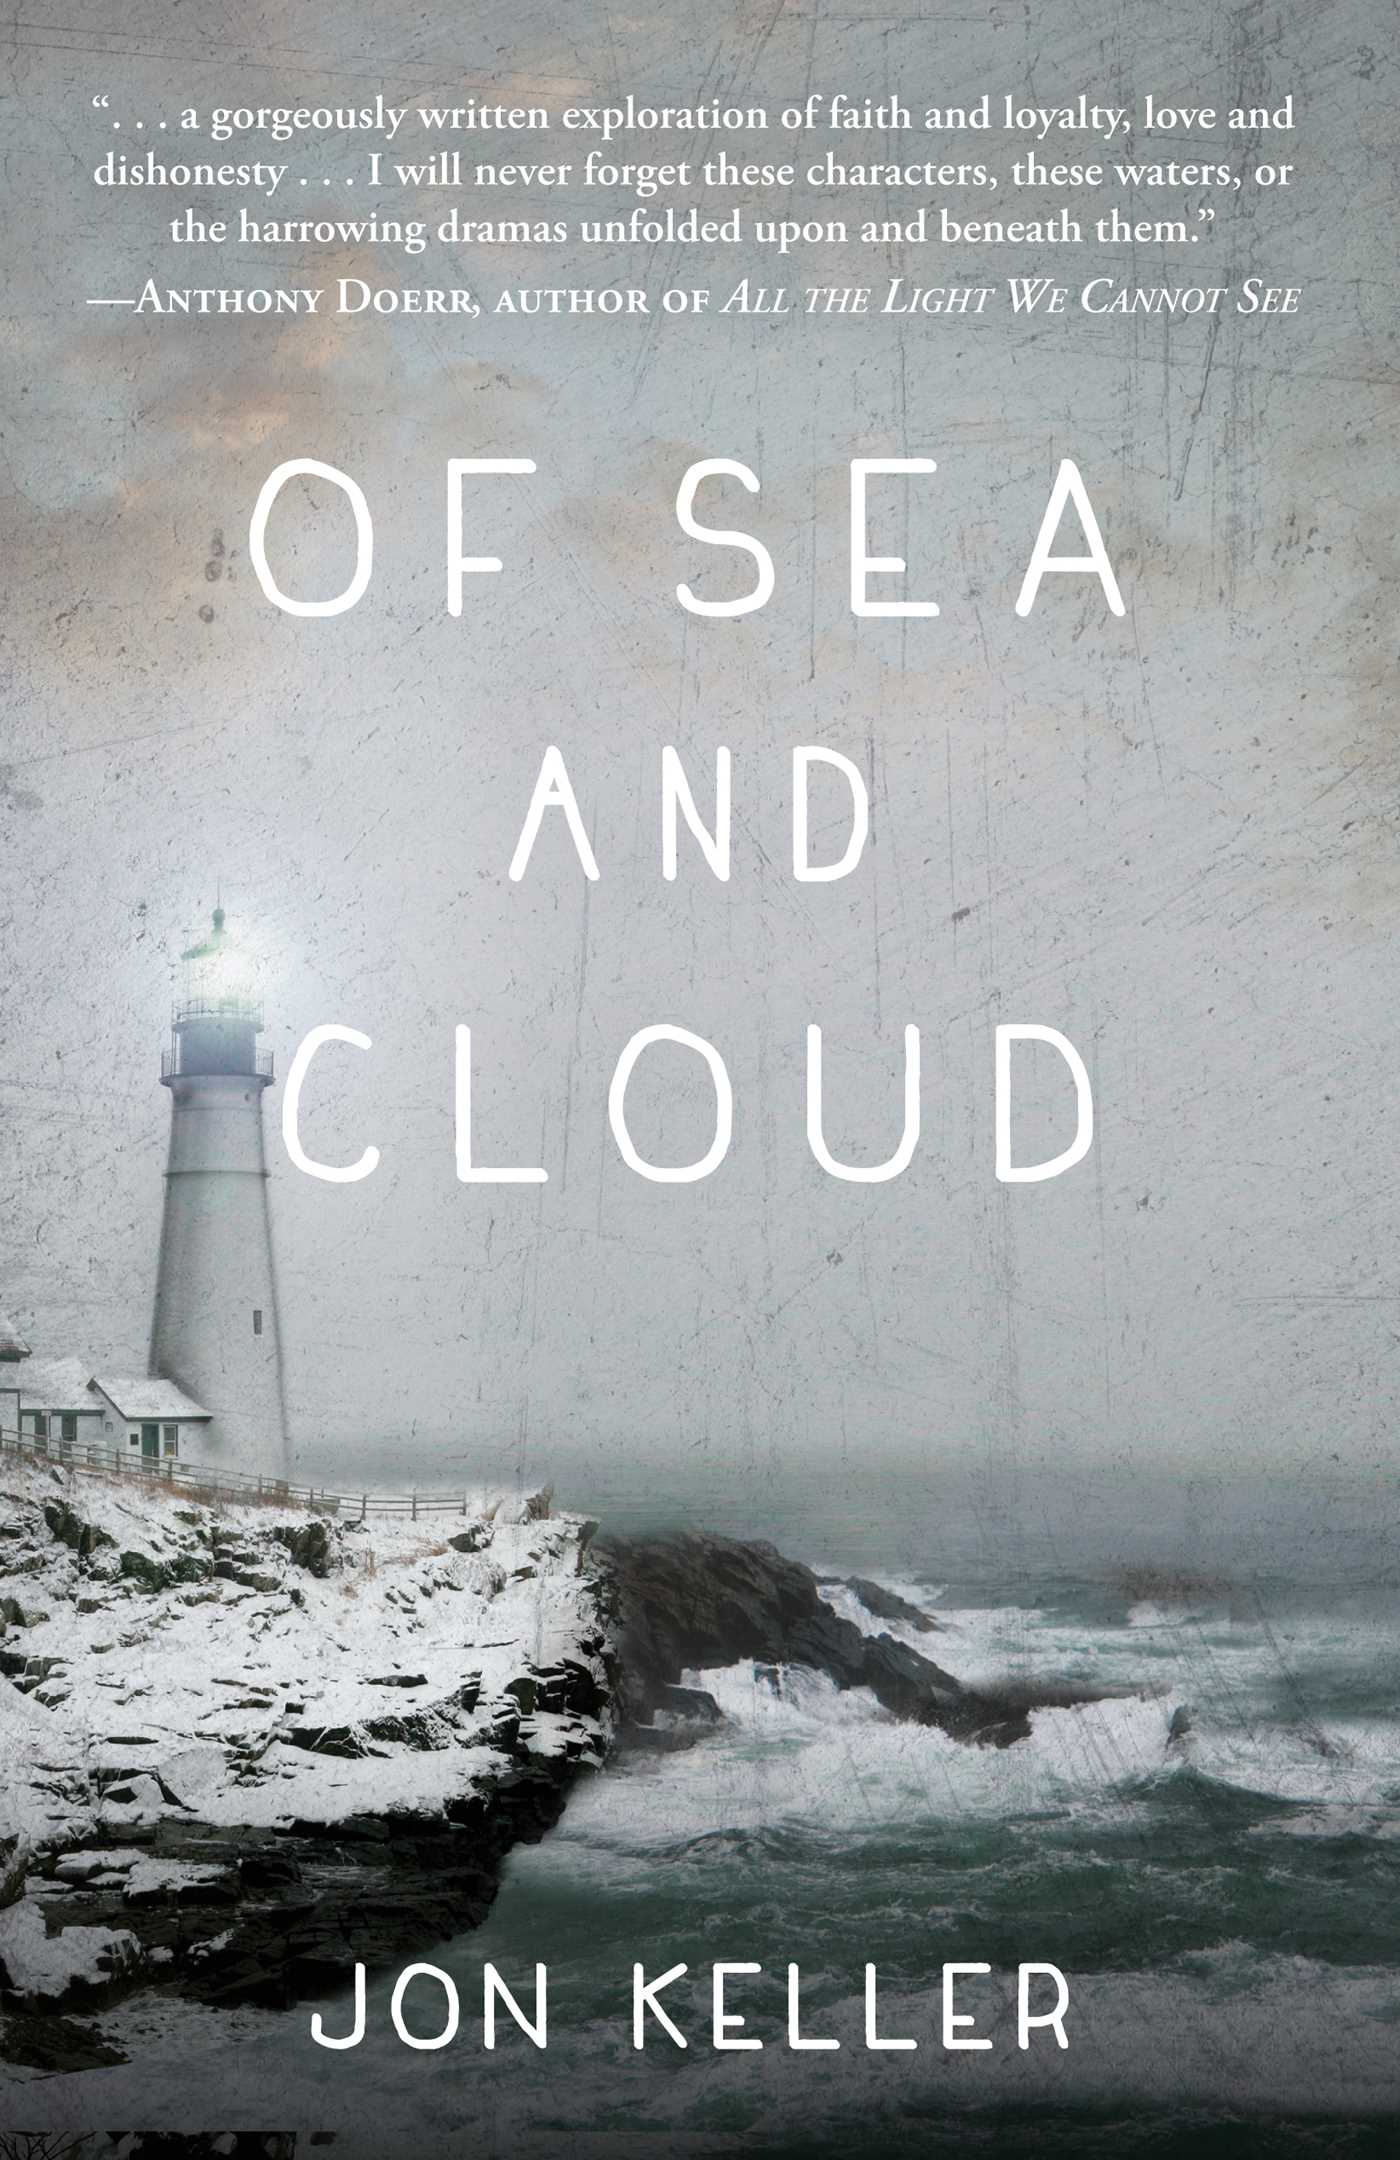 Of sea and cloud 9781440580239 hr